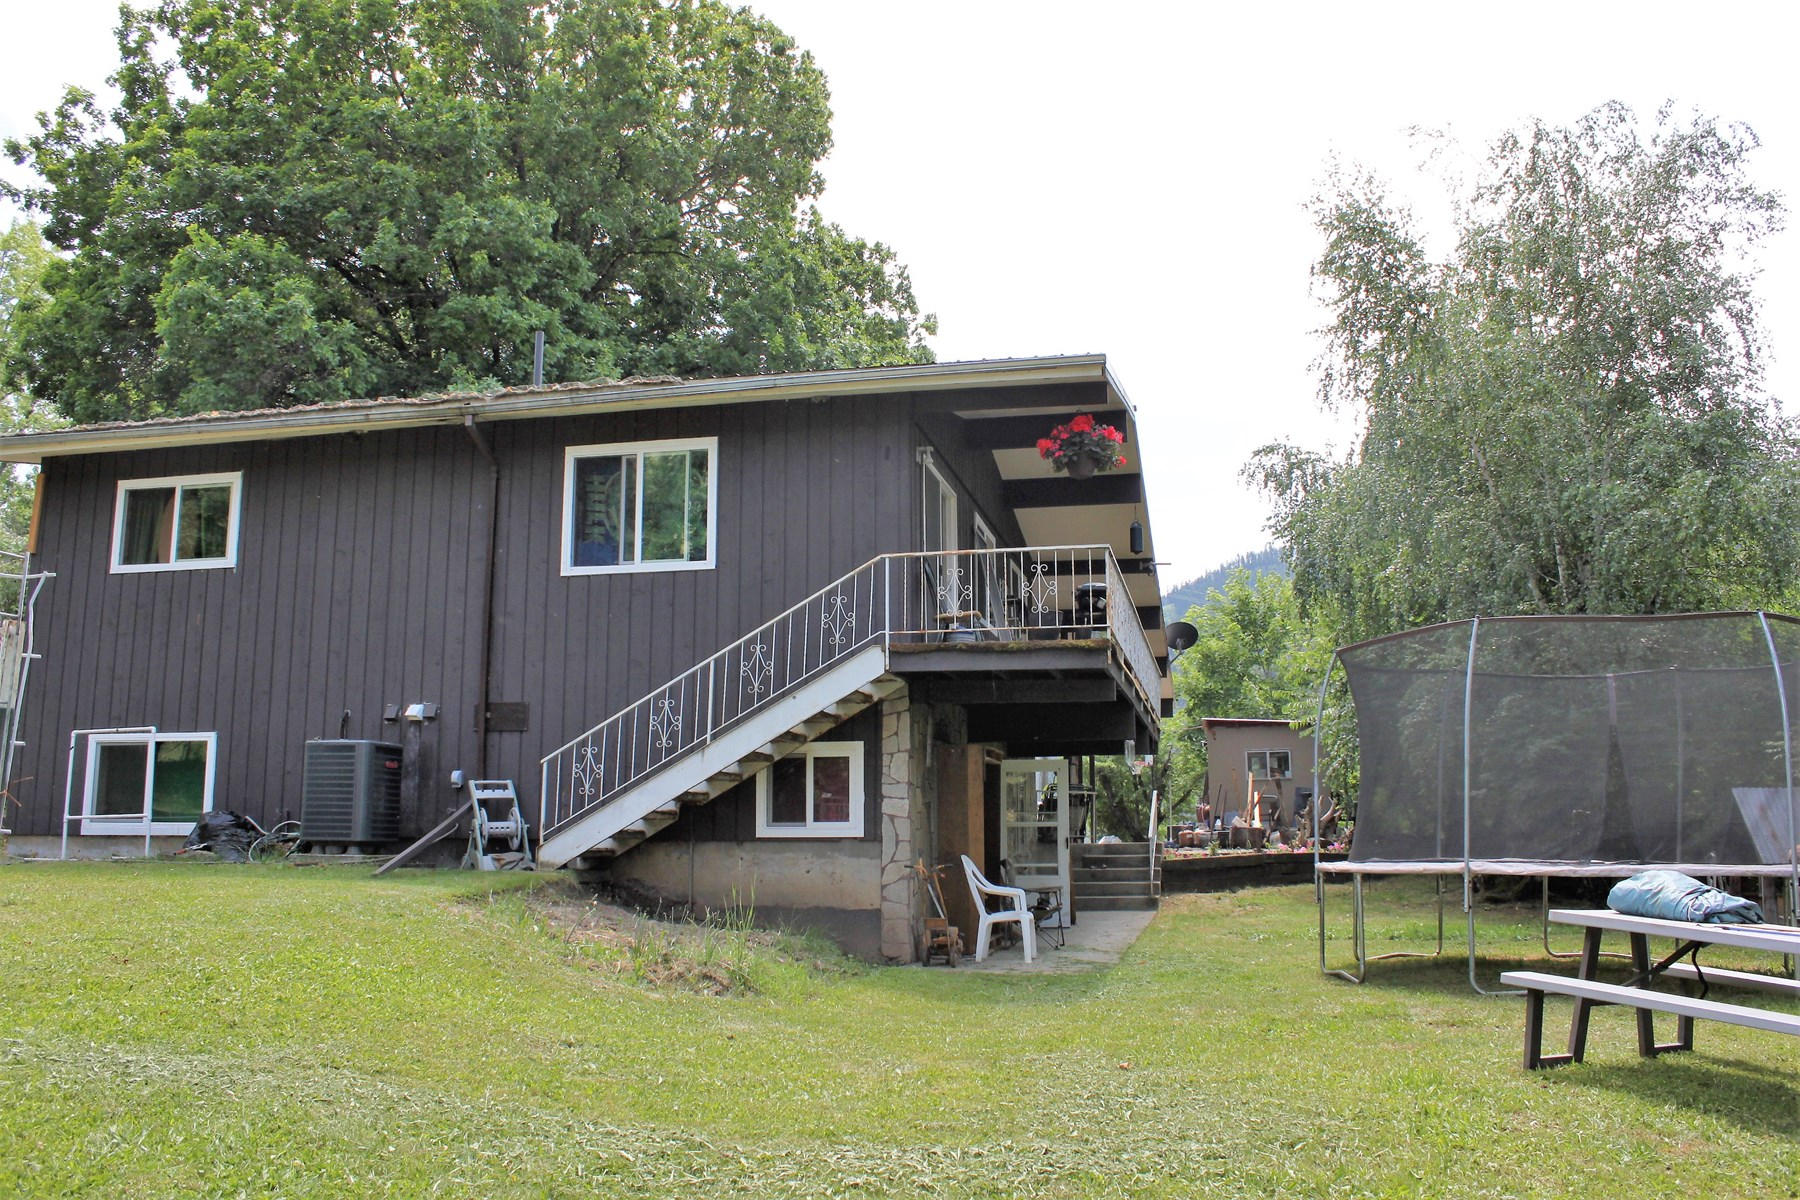 Home in town, 1238 Shriver Road, Orofino, ID 83544